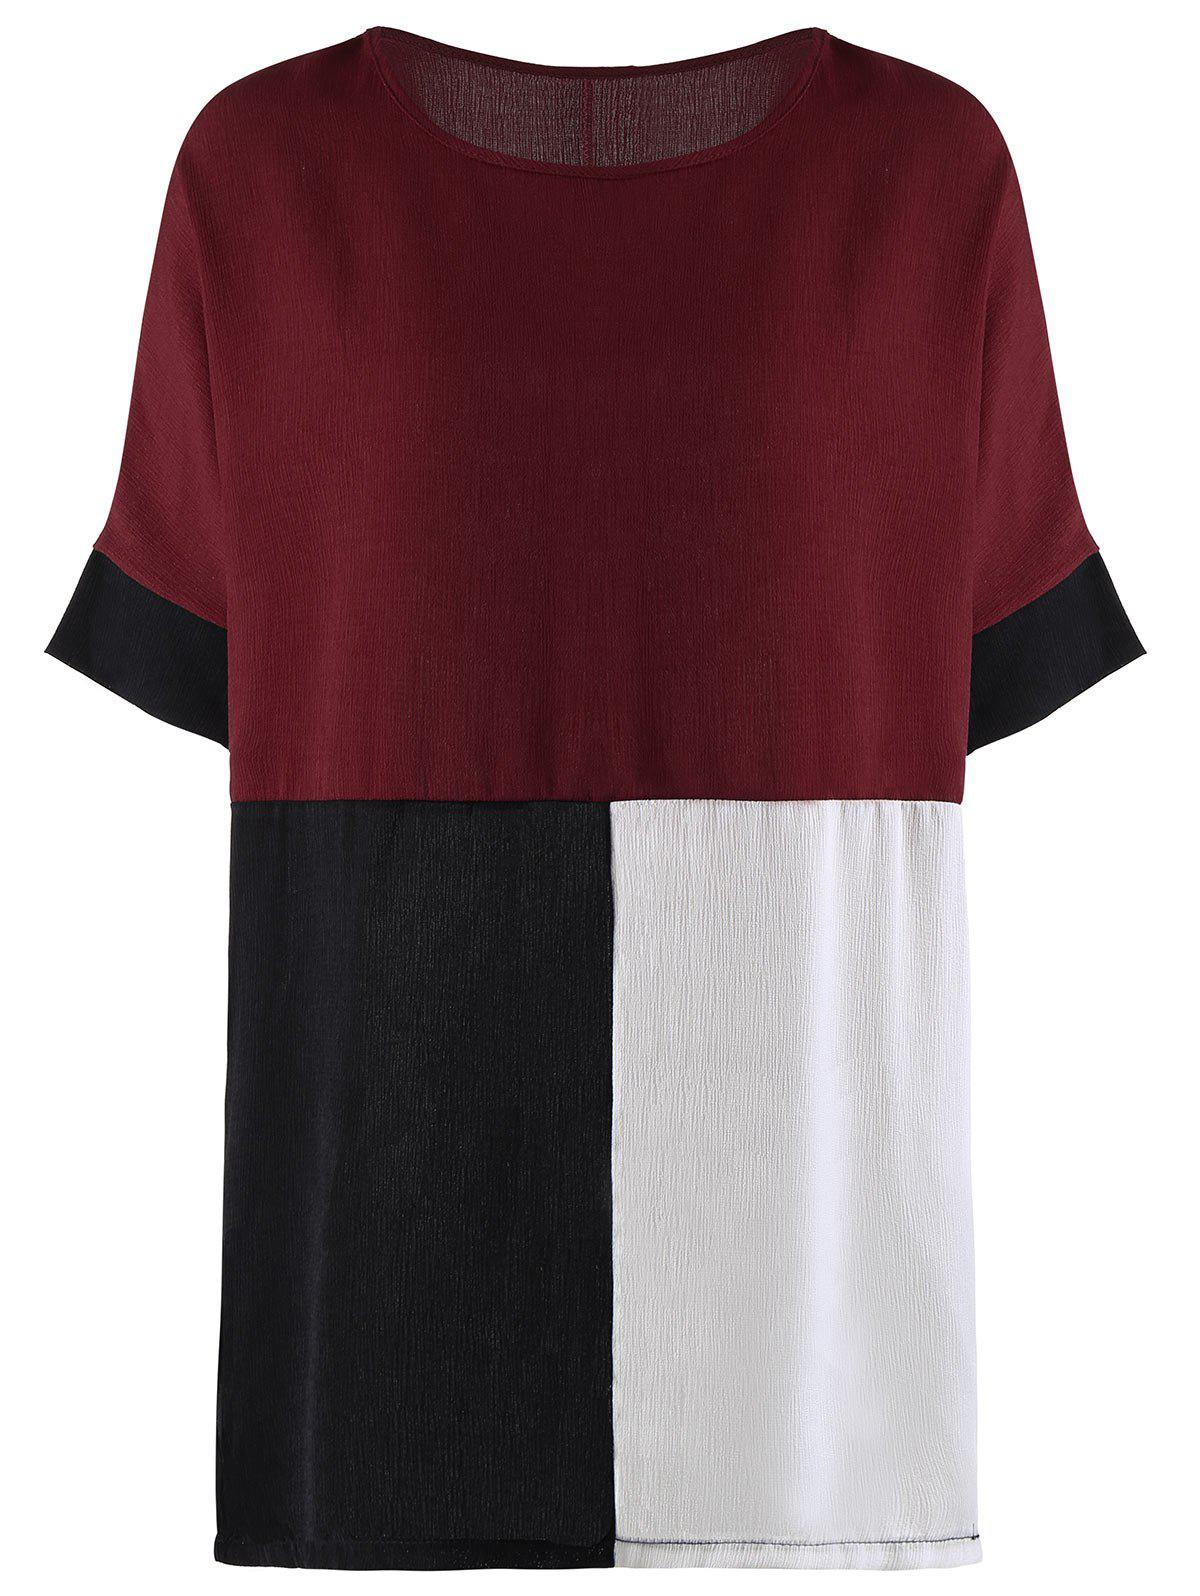 Color Block Oversized Tunic Top - WINE RED 2XL